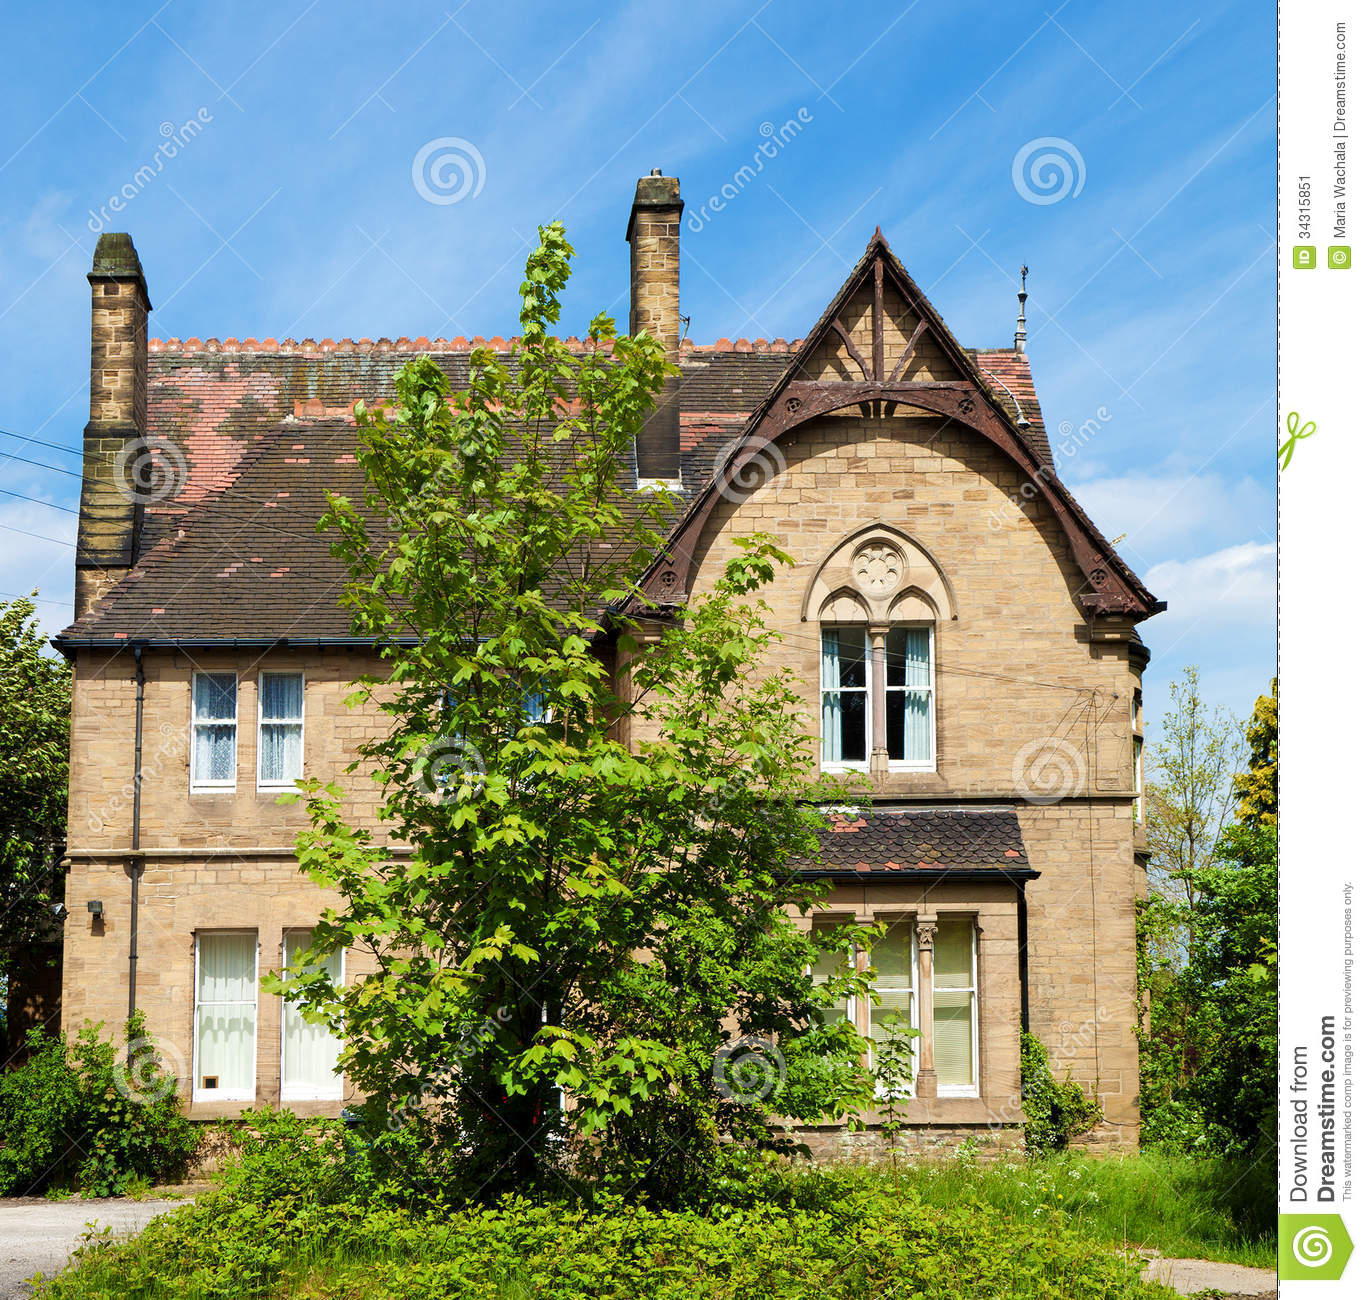 Old english house stock image image of estate style for Classic english house